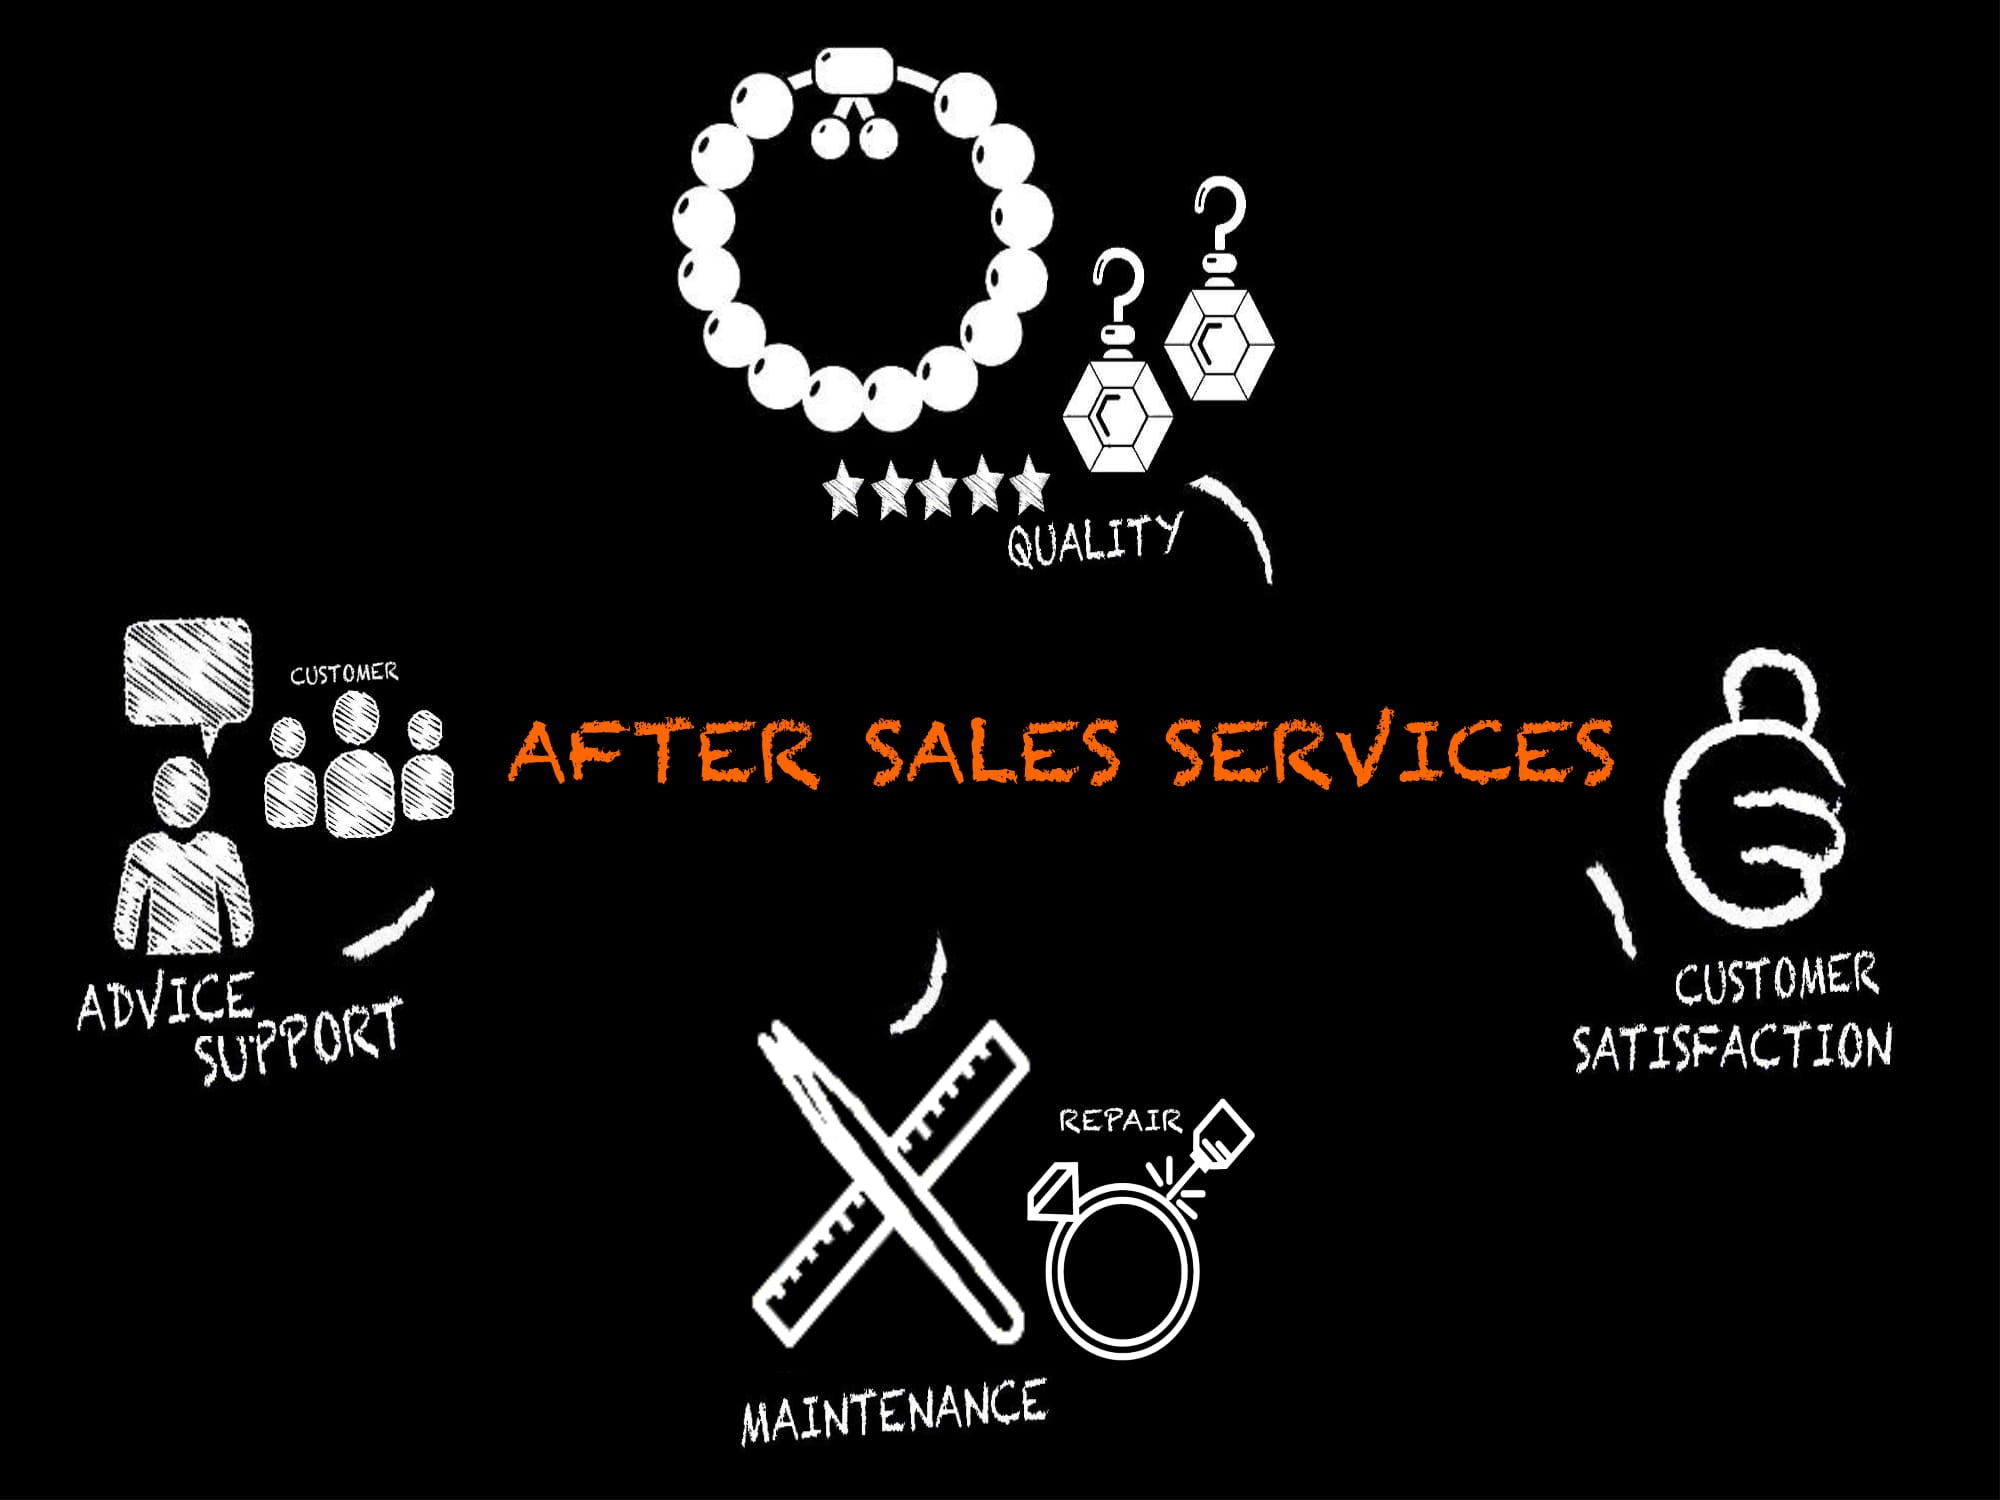 After Sales Services For Jewelry Repair